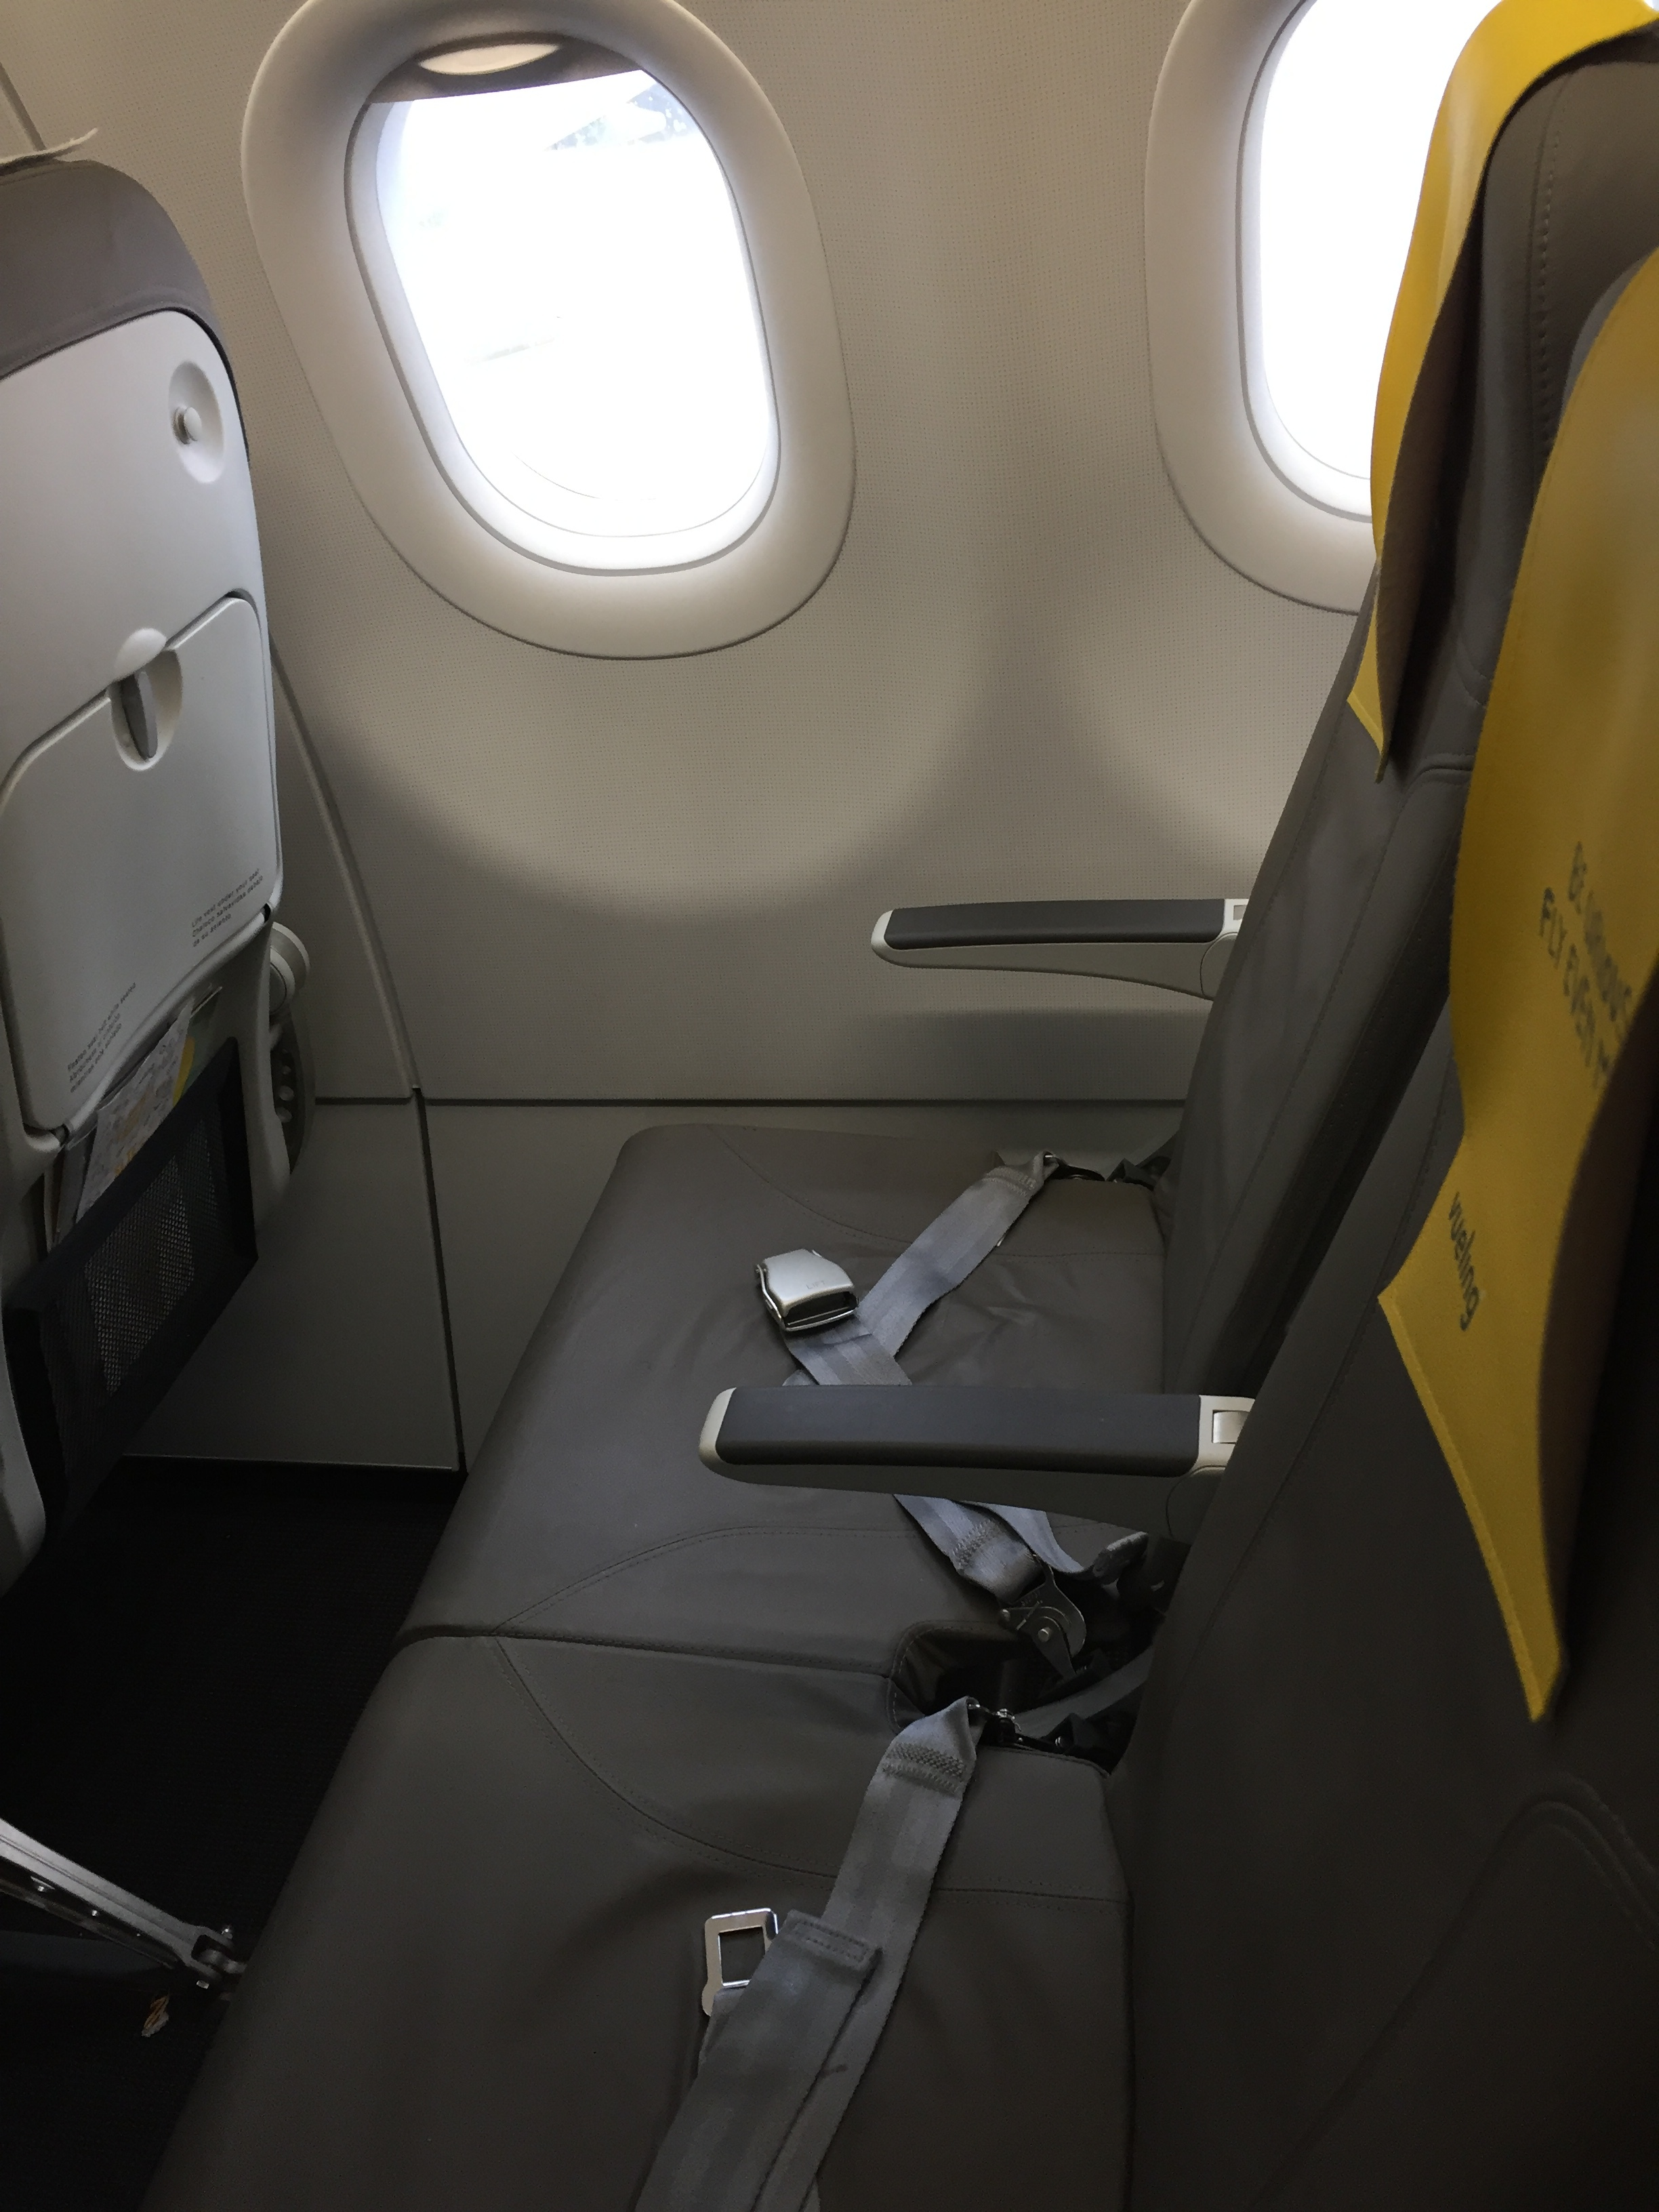 Vueling seat pitch.JPG